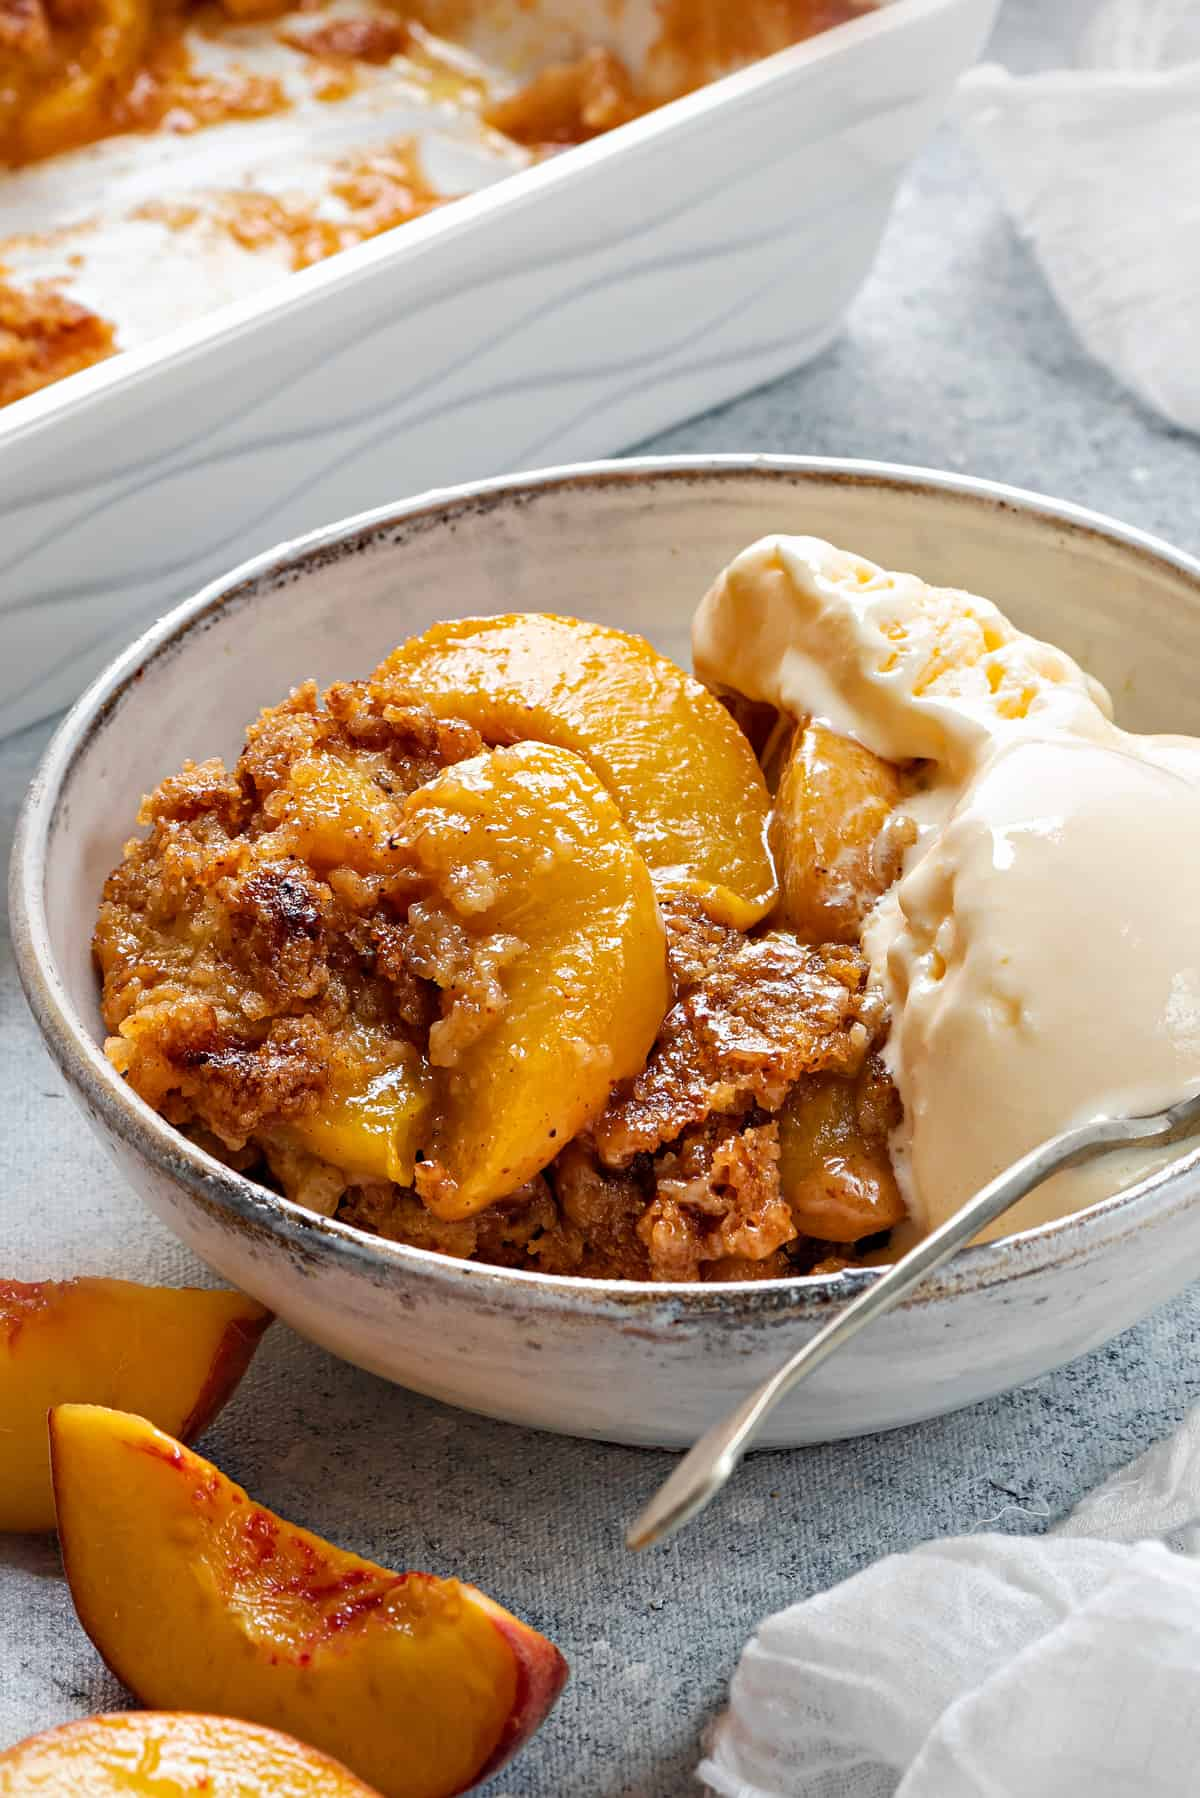 close up shot of peach cobbler in a bowl with ice cream, highlighting the texture of the juicy peaches and the crispy topping